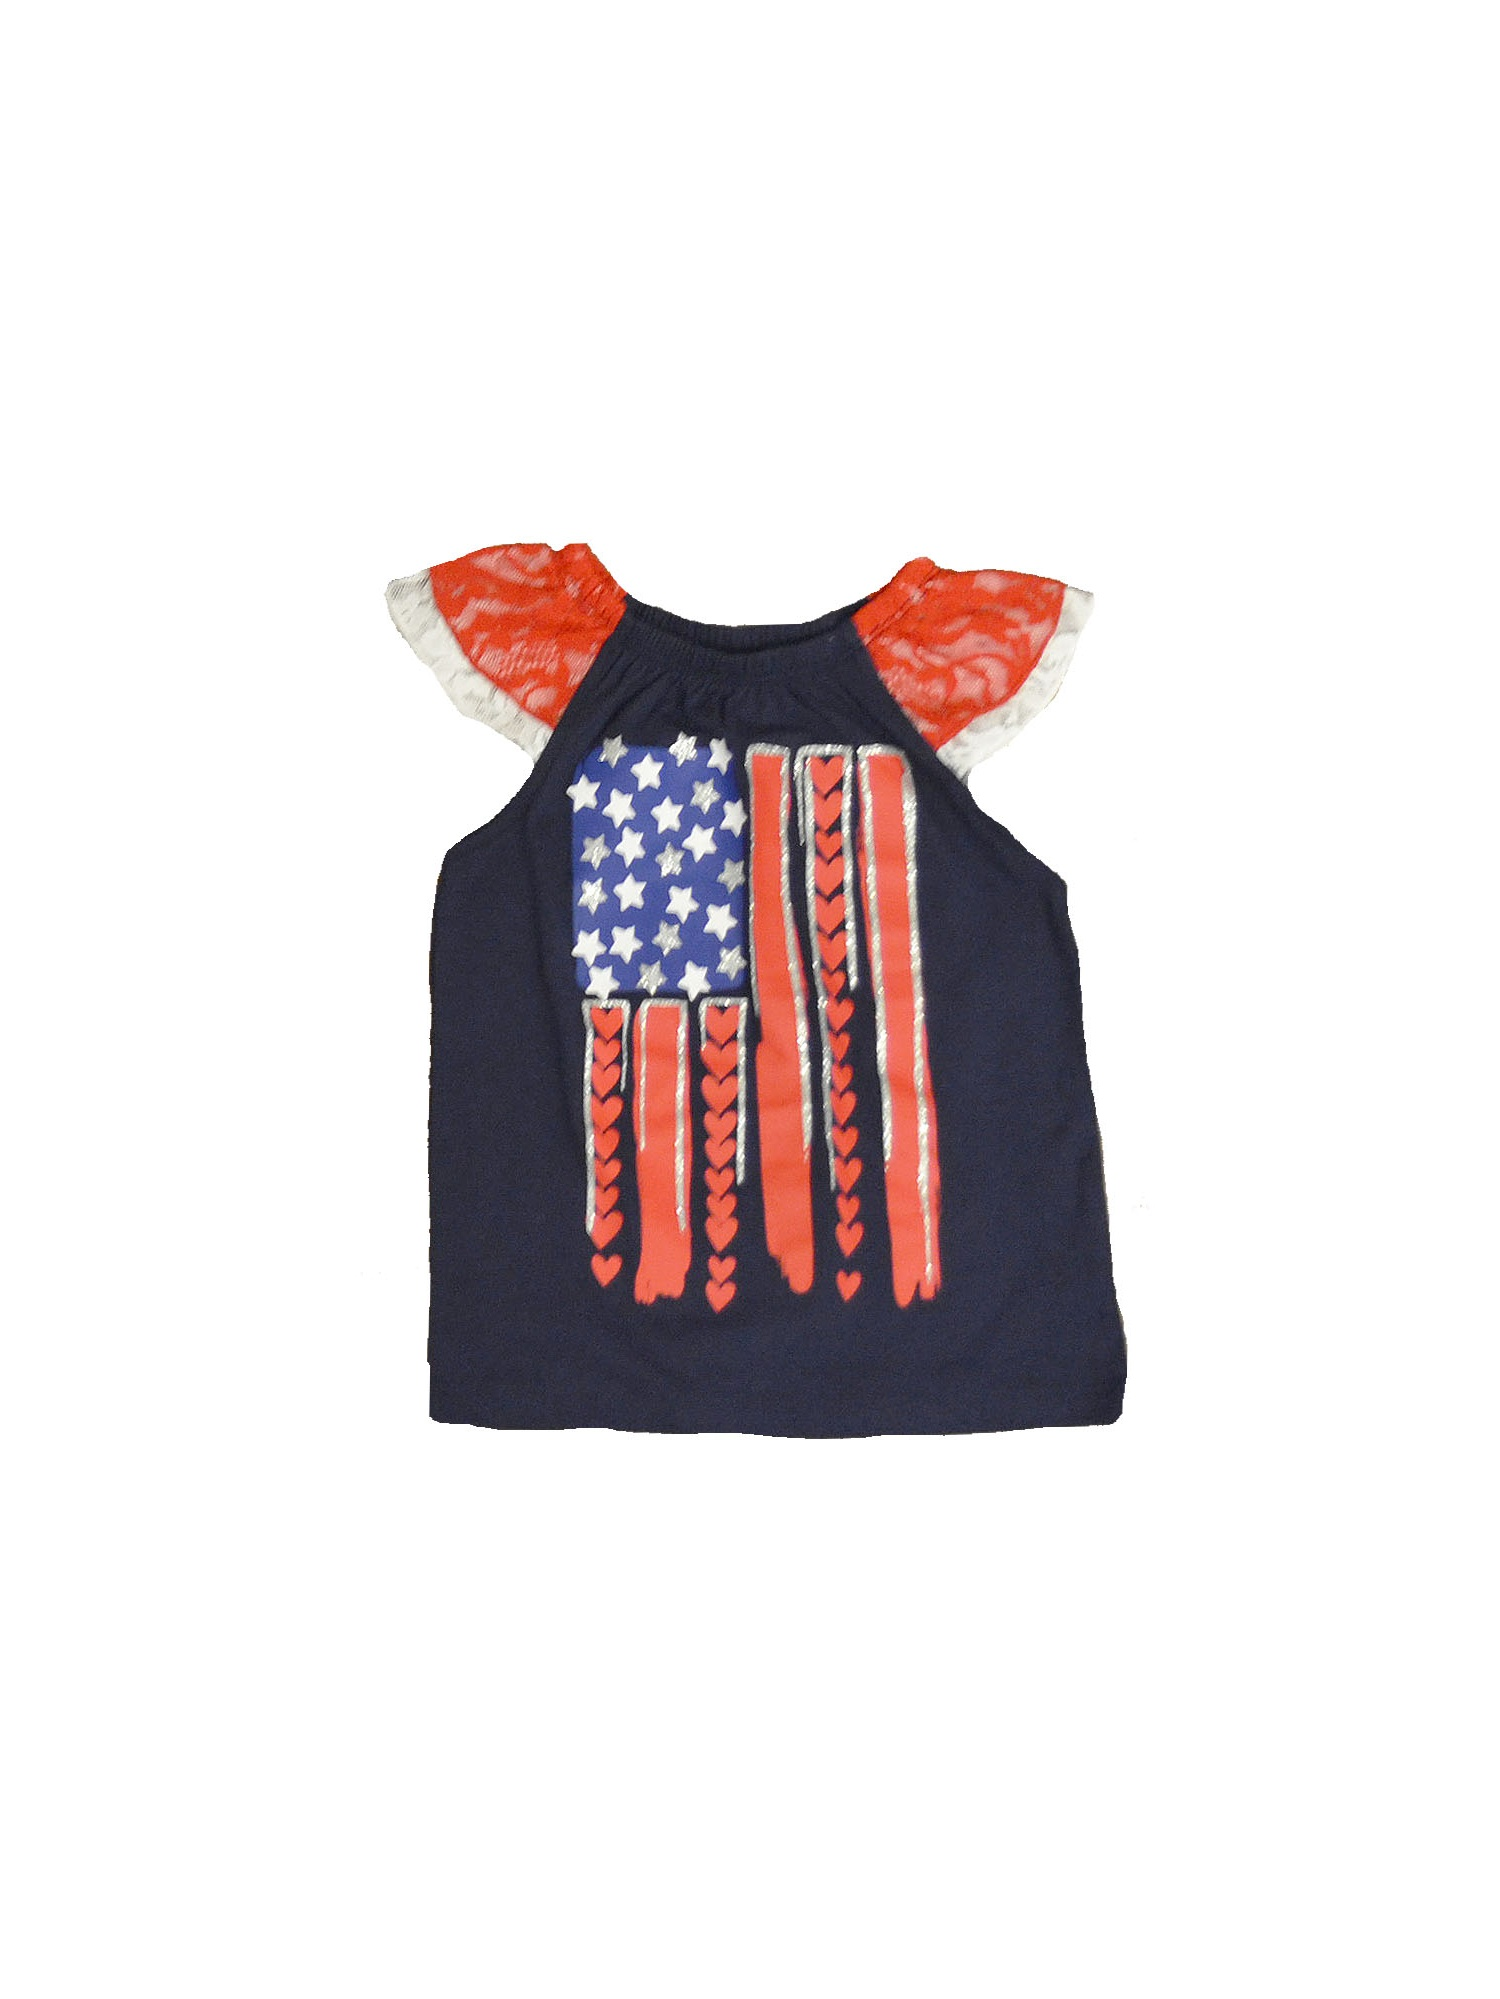 Baby Toddler Girl Graphic Tee